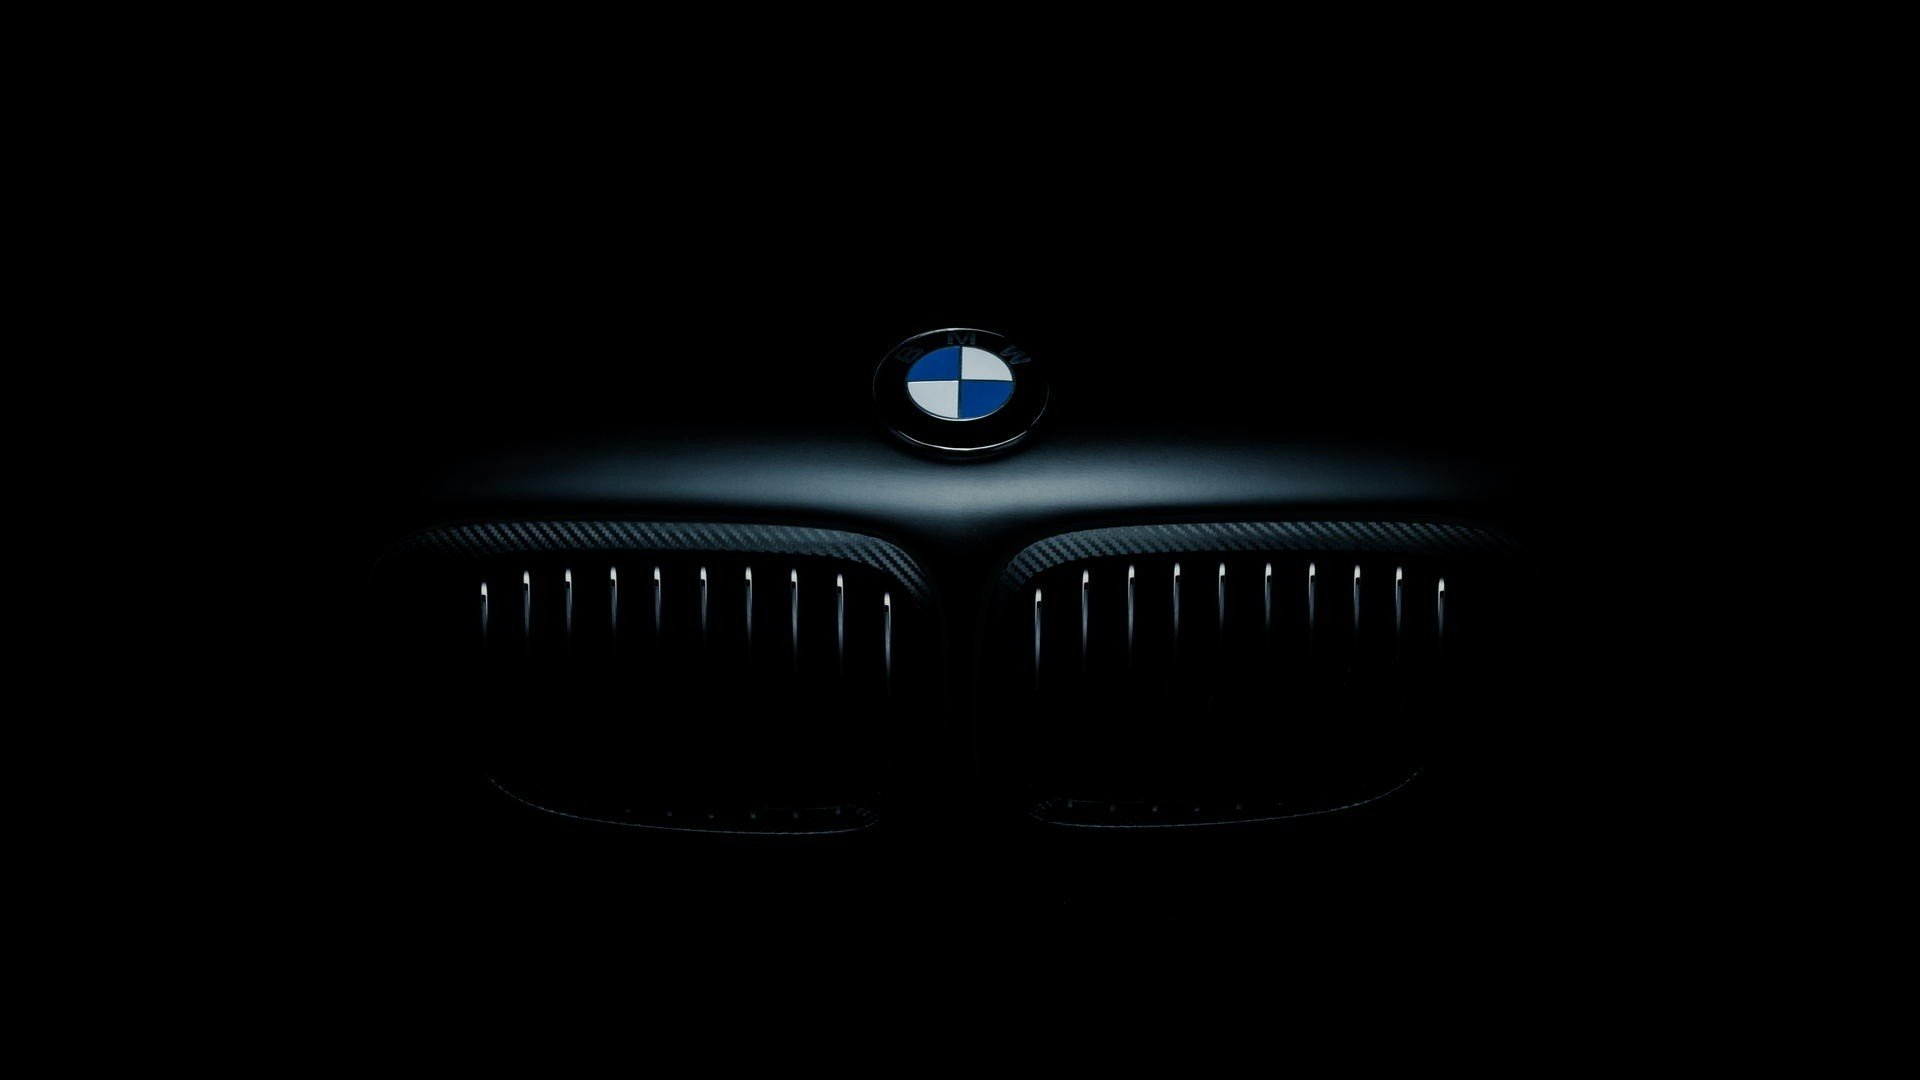 Bmw Logo Wallpaper 1920x1080 Wallpapersafari